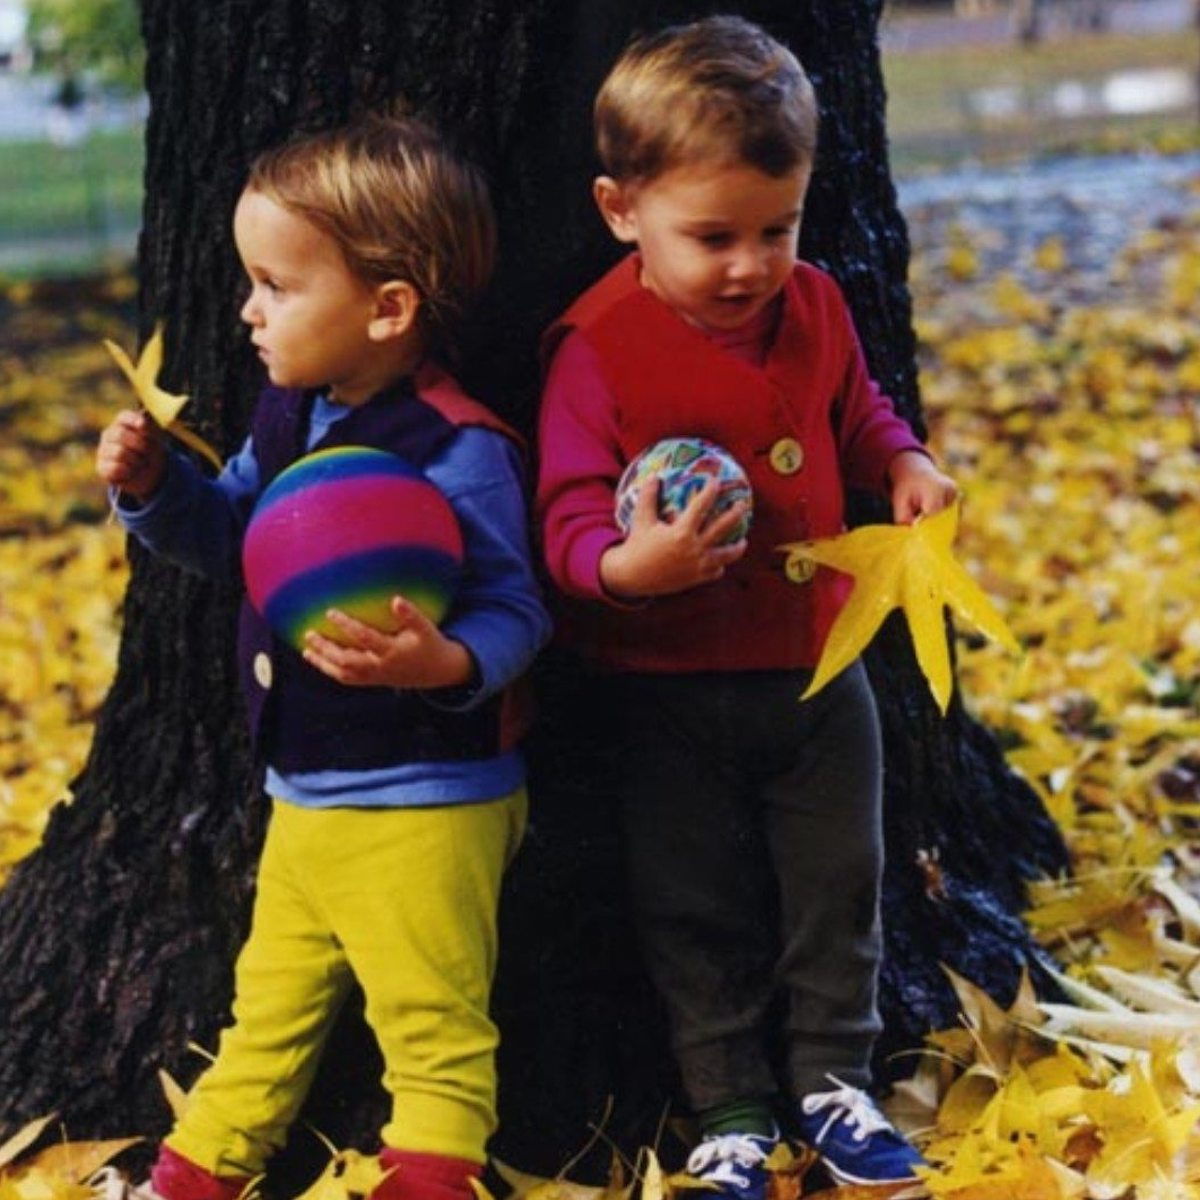 Two children playing outside by a tree with fall leaves and eeBoo toys